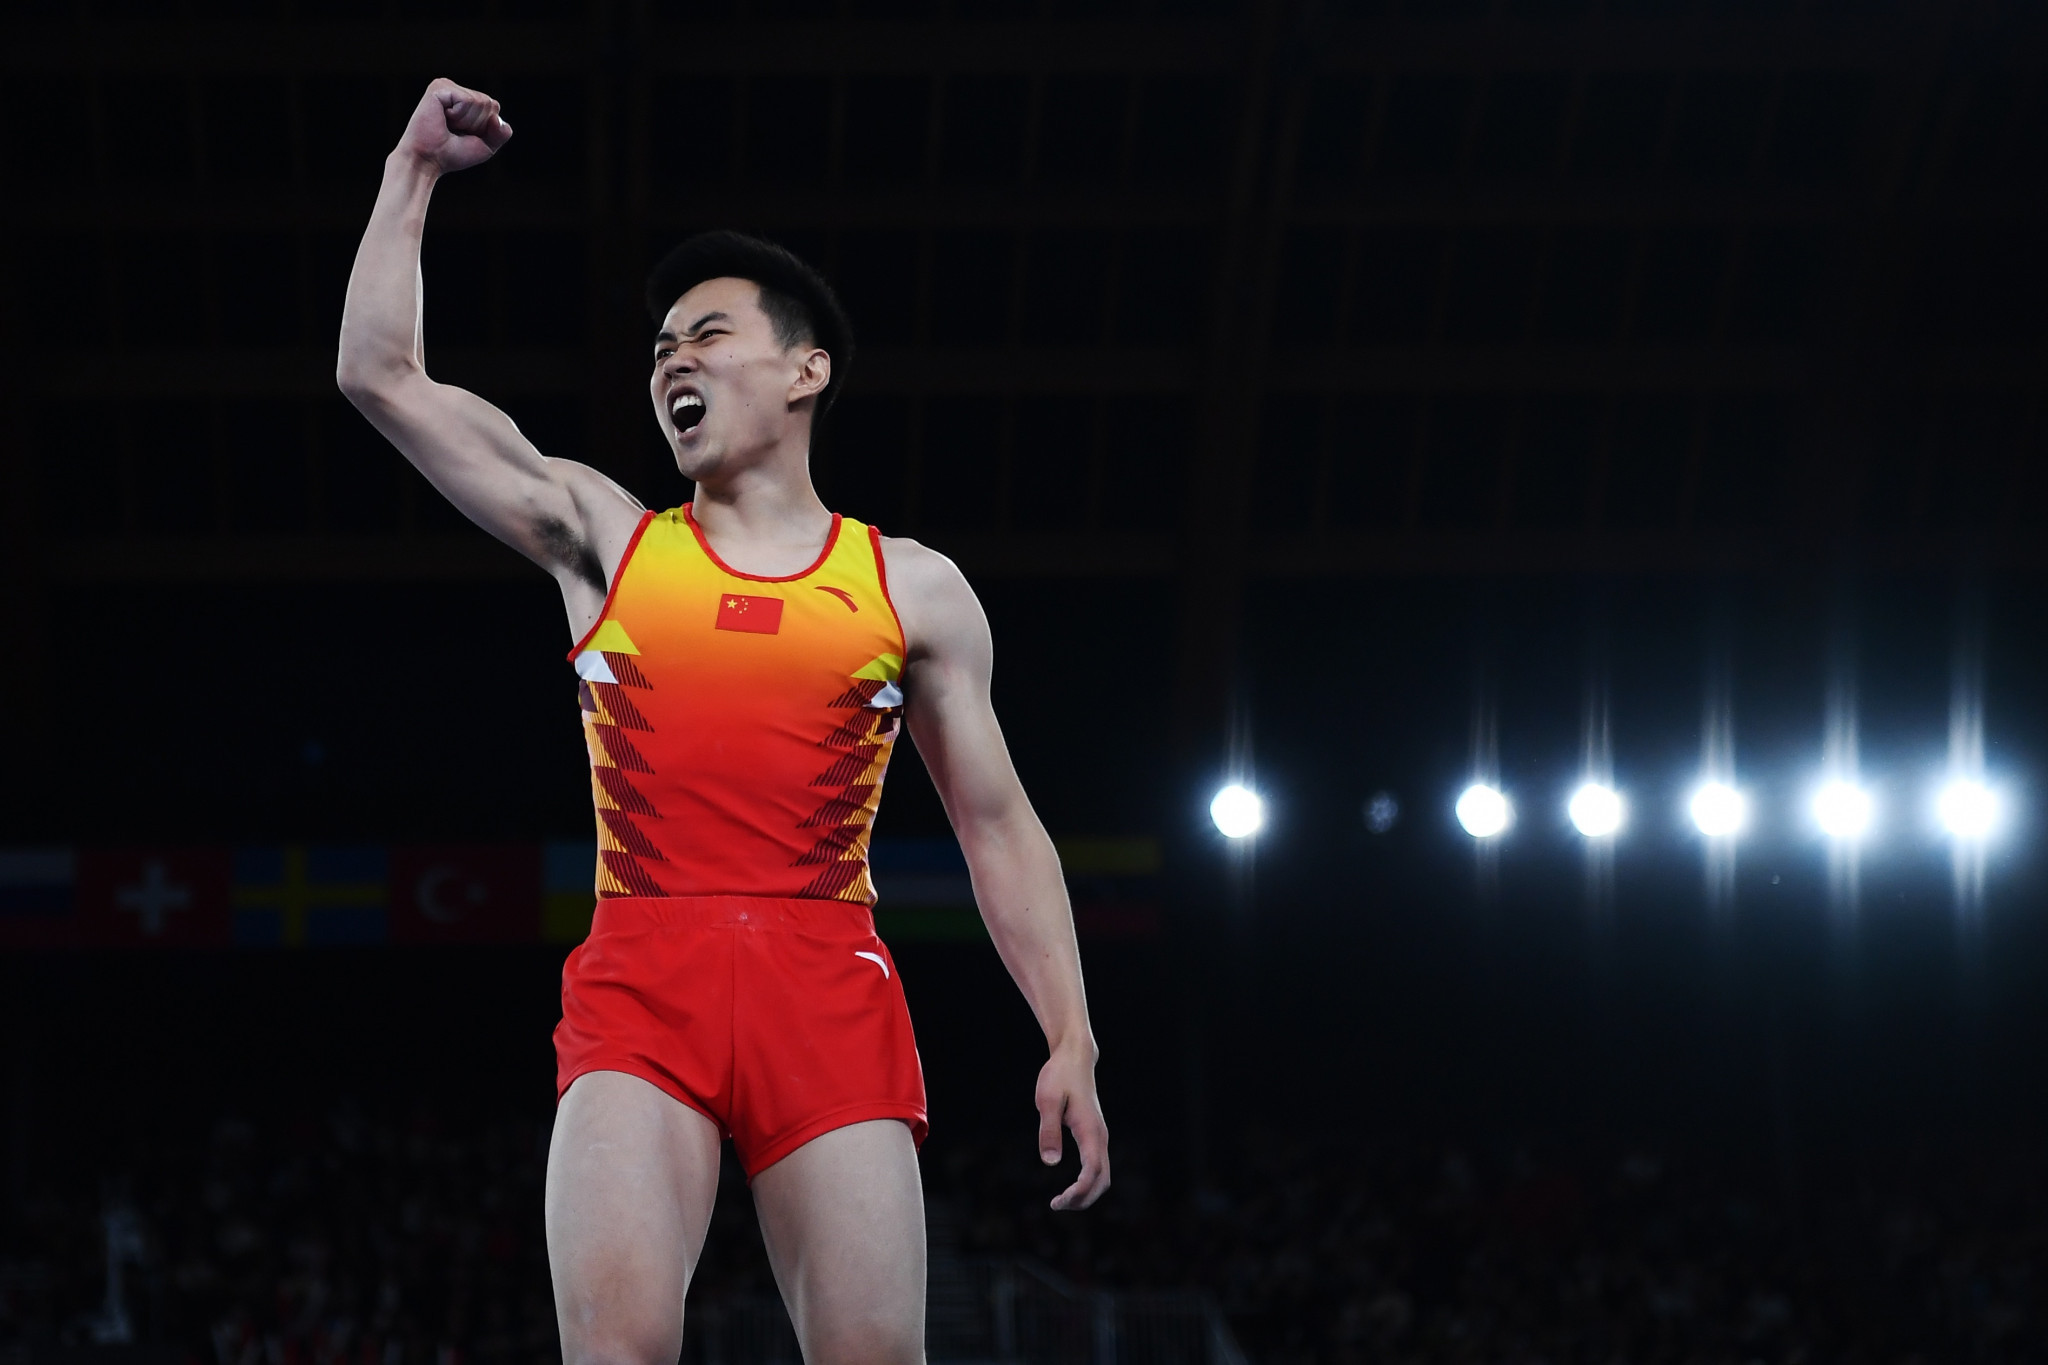 Gao Lei triumphed in the men's trampoline competition in Baku ©Getty Images